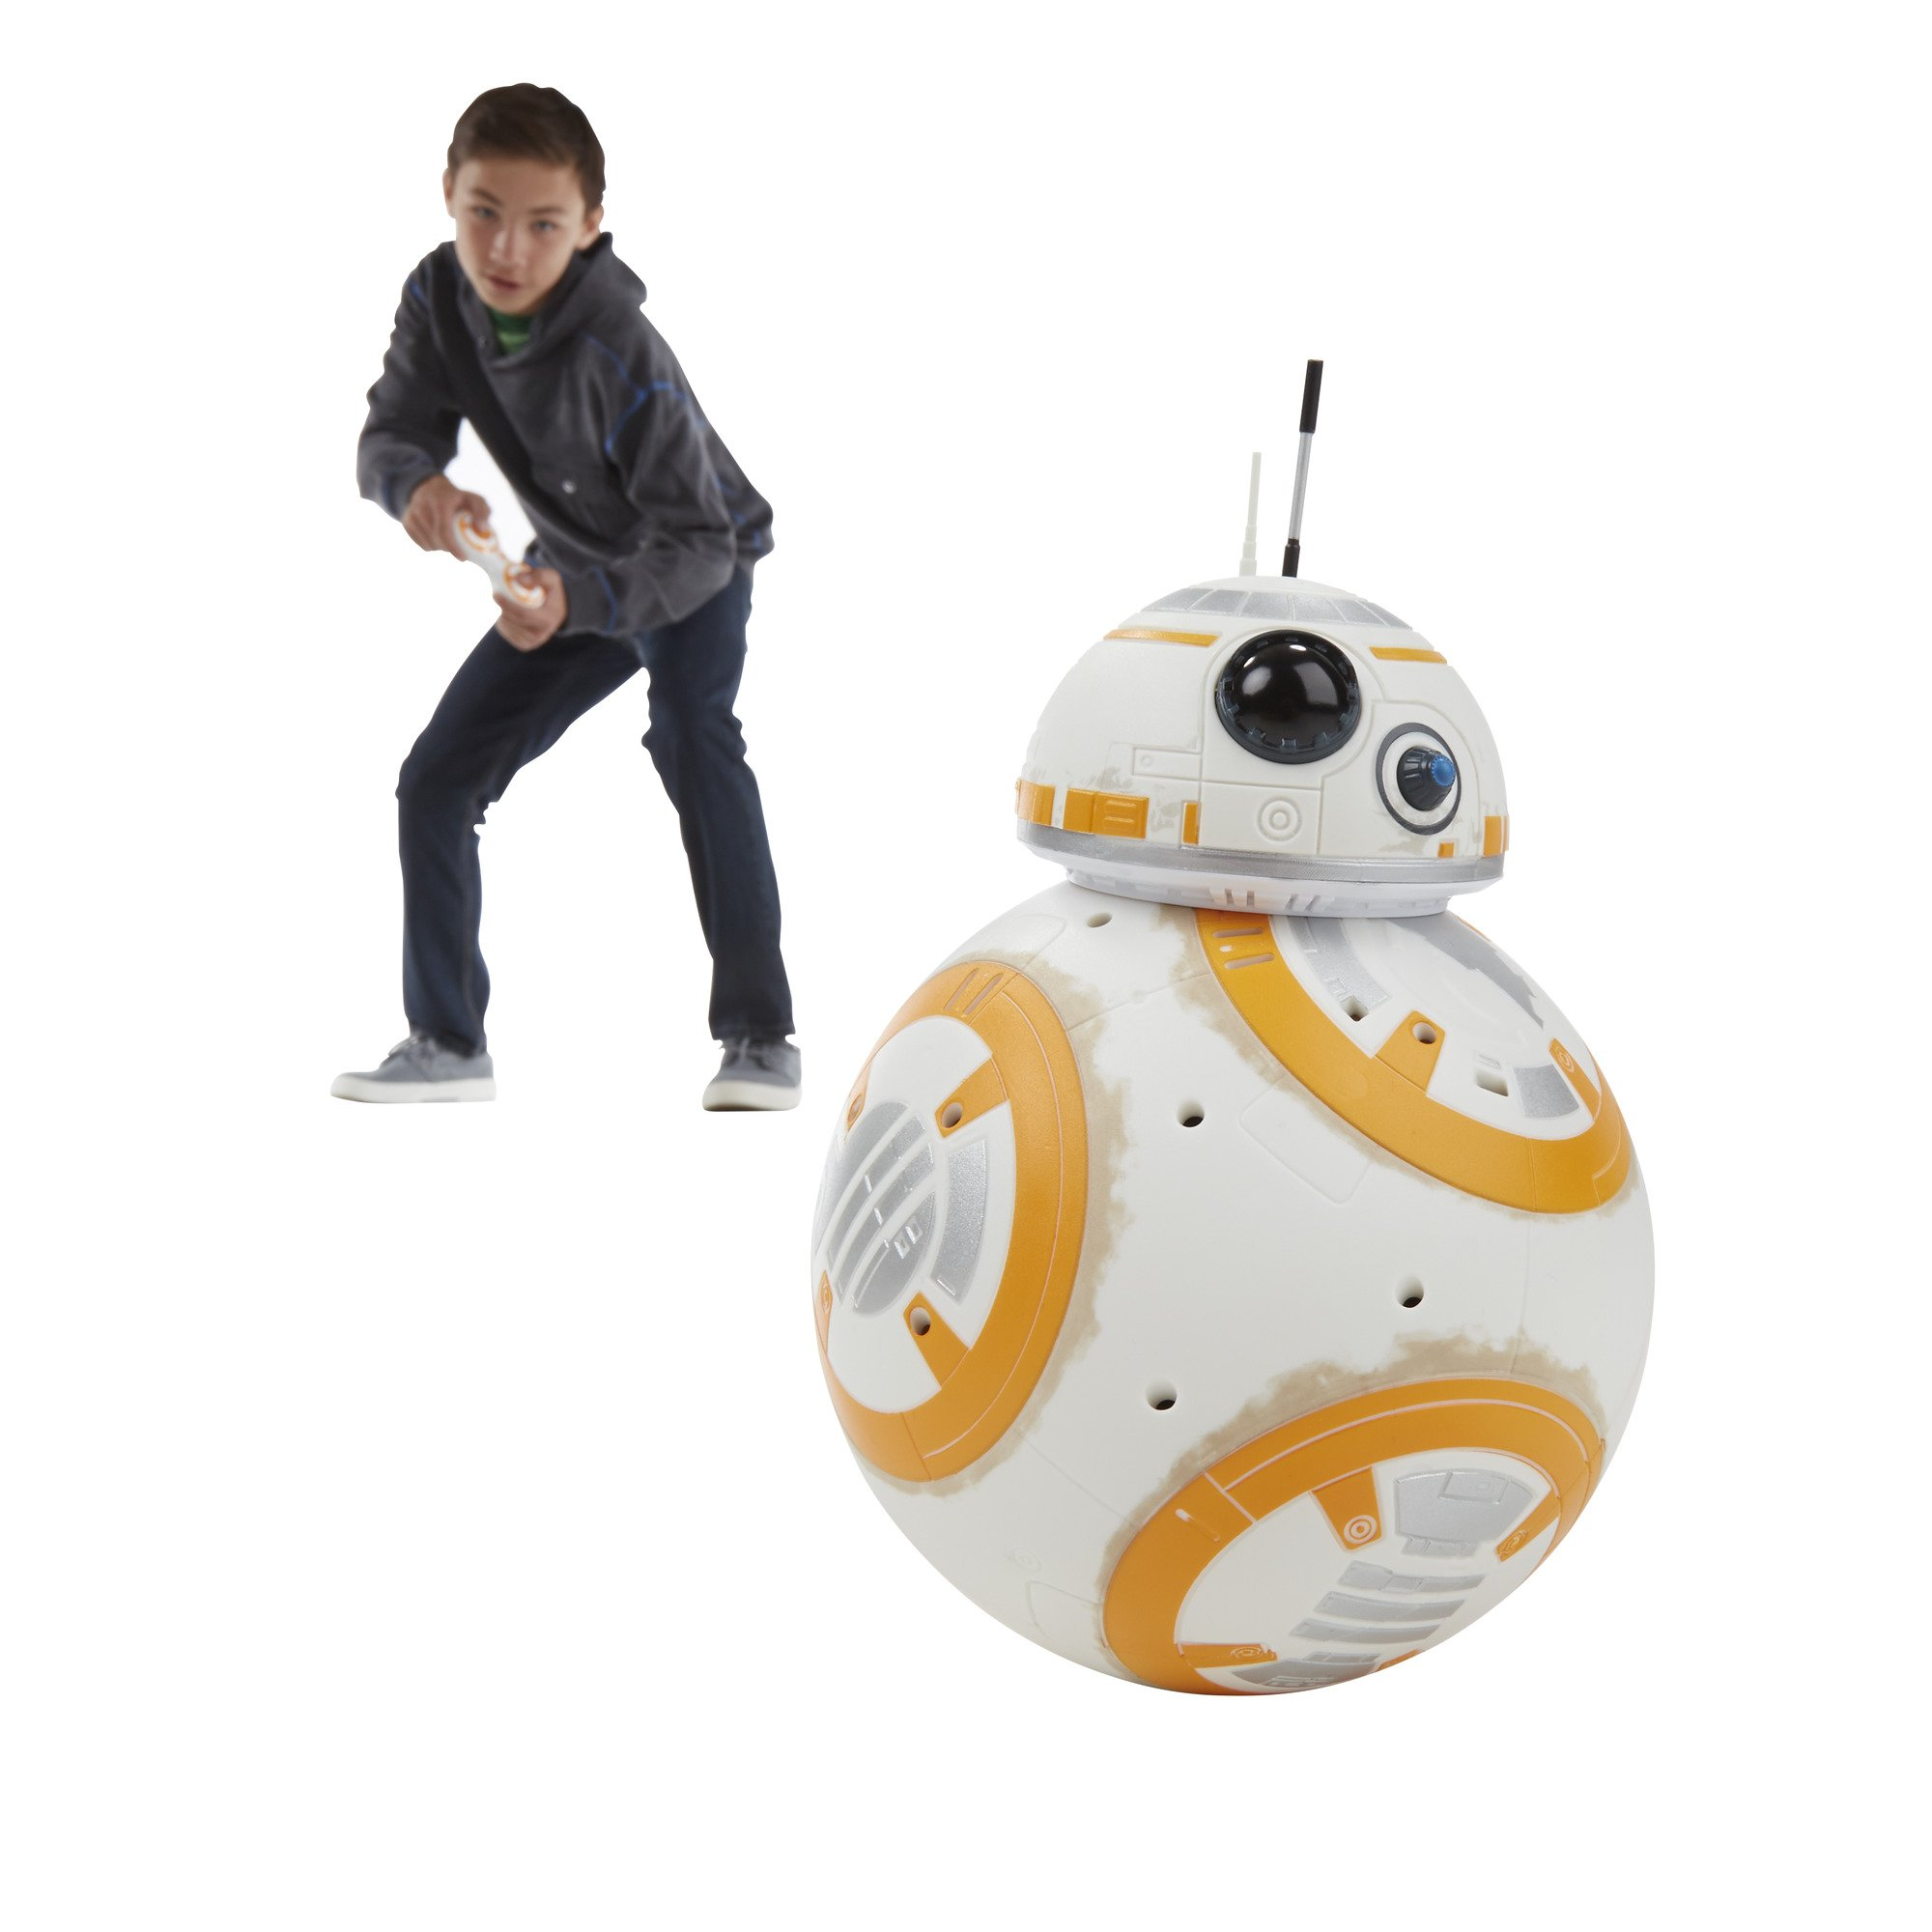 Star Wars The Force Awakens RC BB-8 by Star Wars (Image #3)